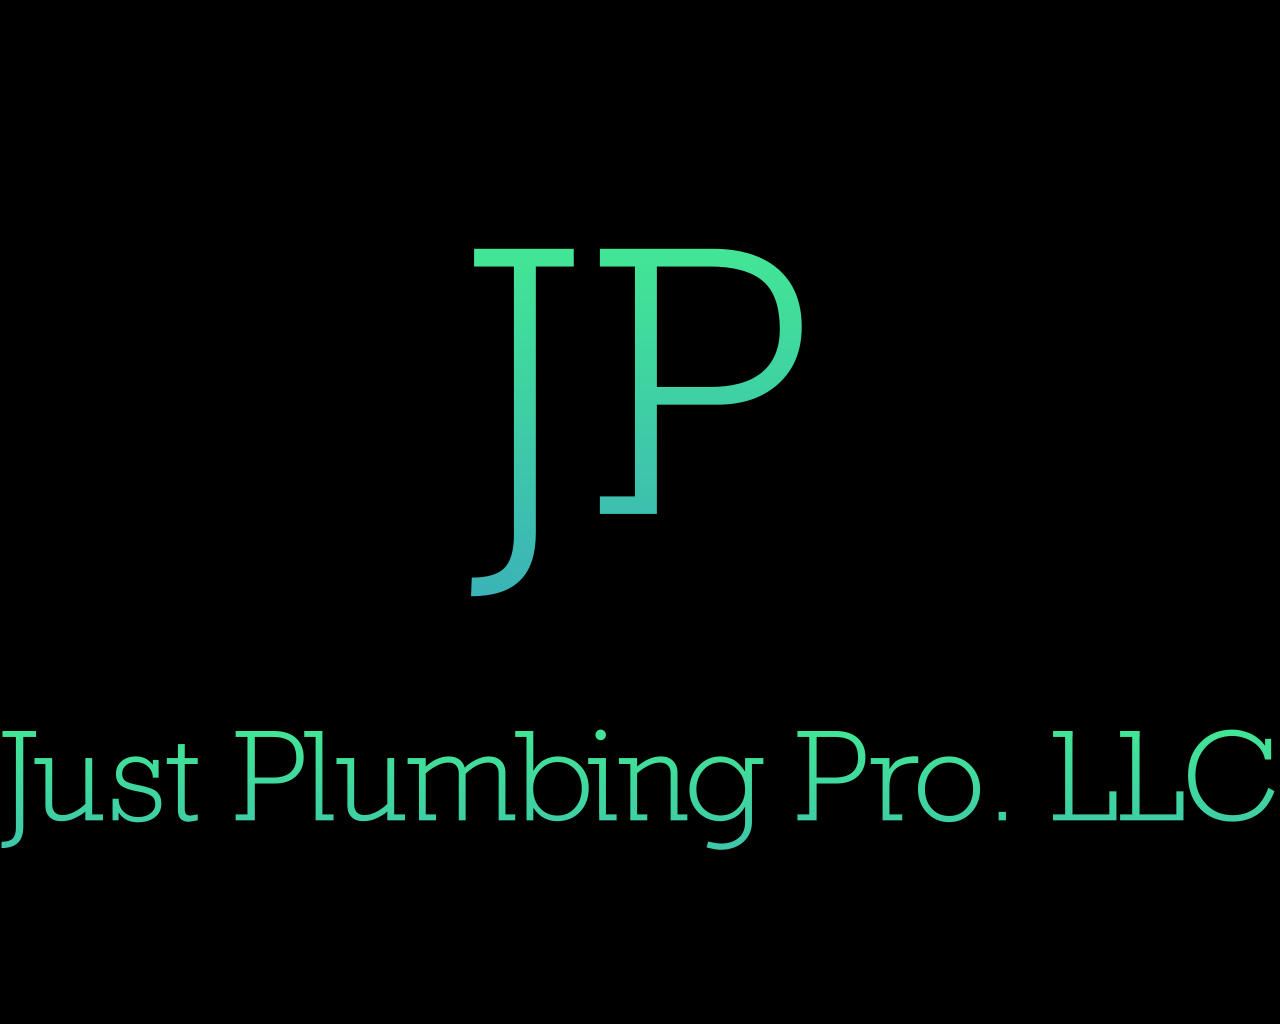 Just Plumbing Pro, LLC, Orland Park, IL Plumber Offers Affordable New Water Heater Installation and Plumbing Services for Residential and Commercial Clients